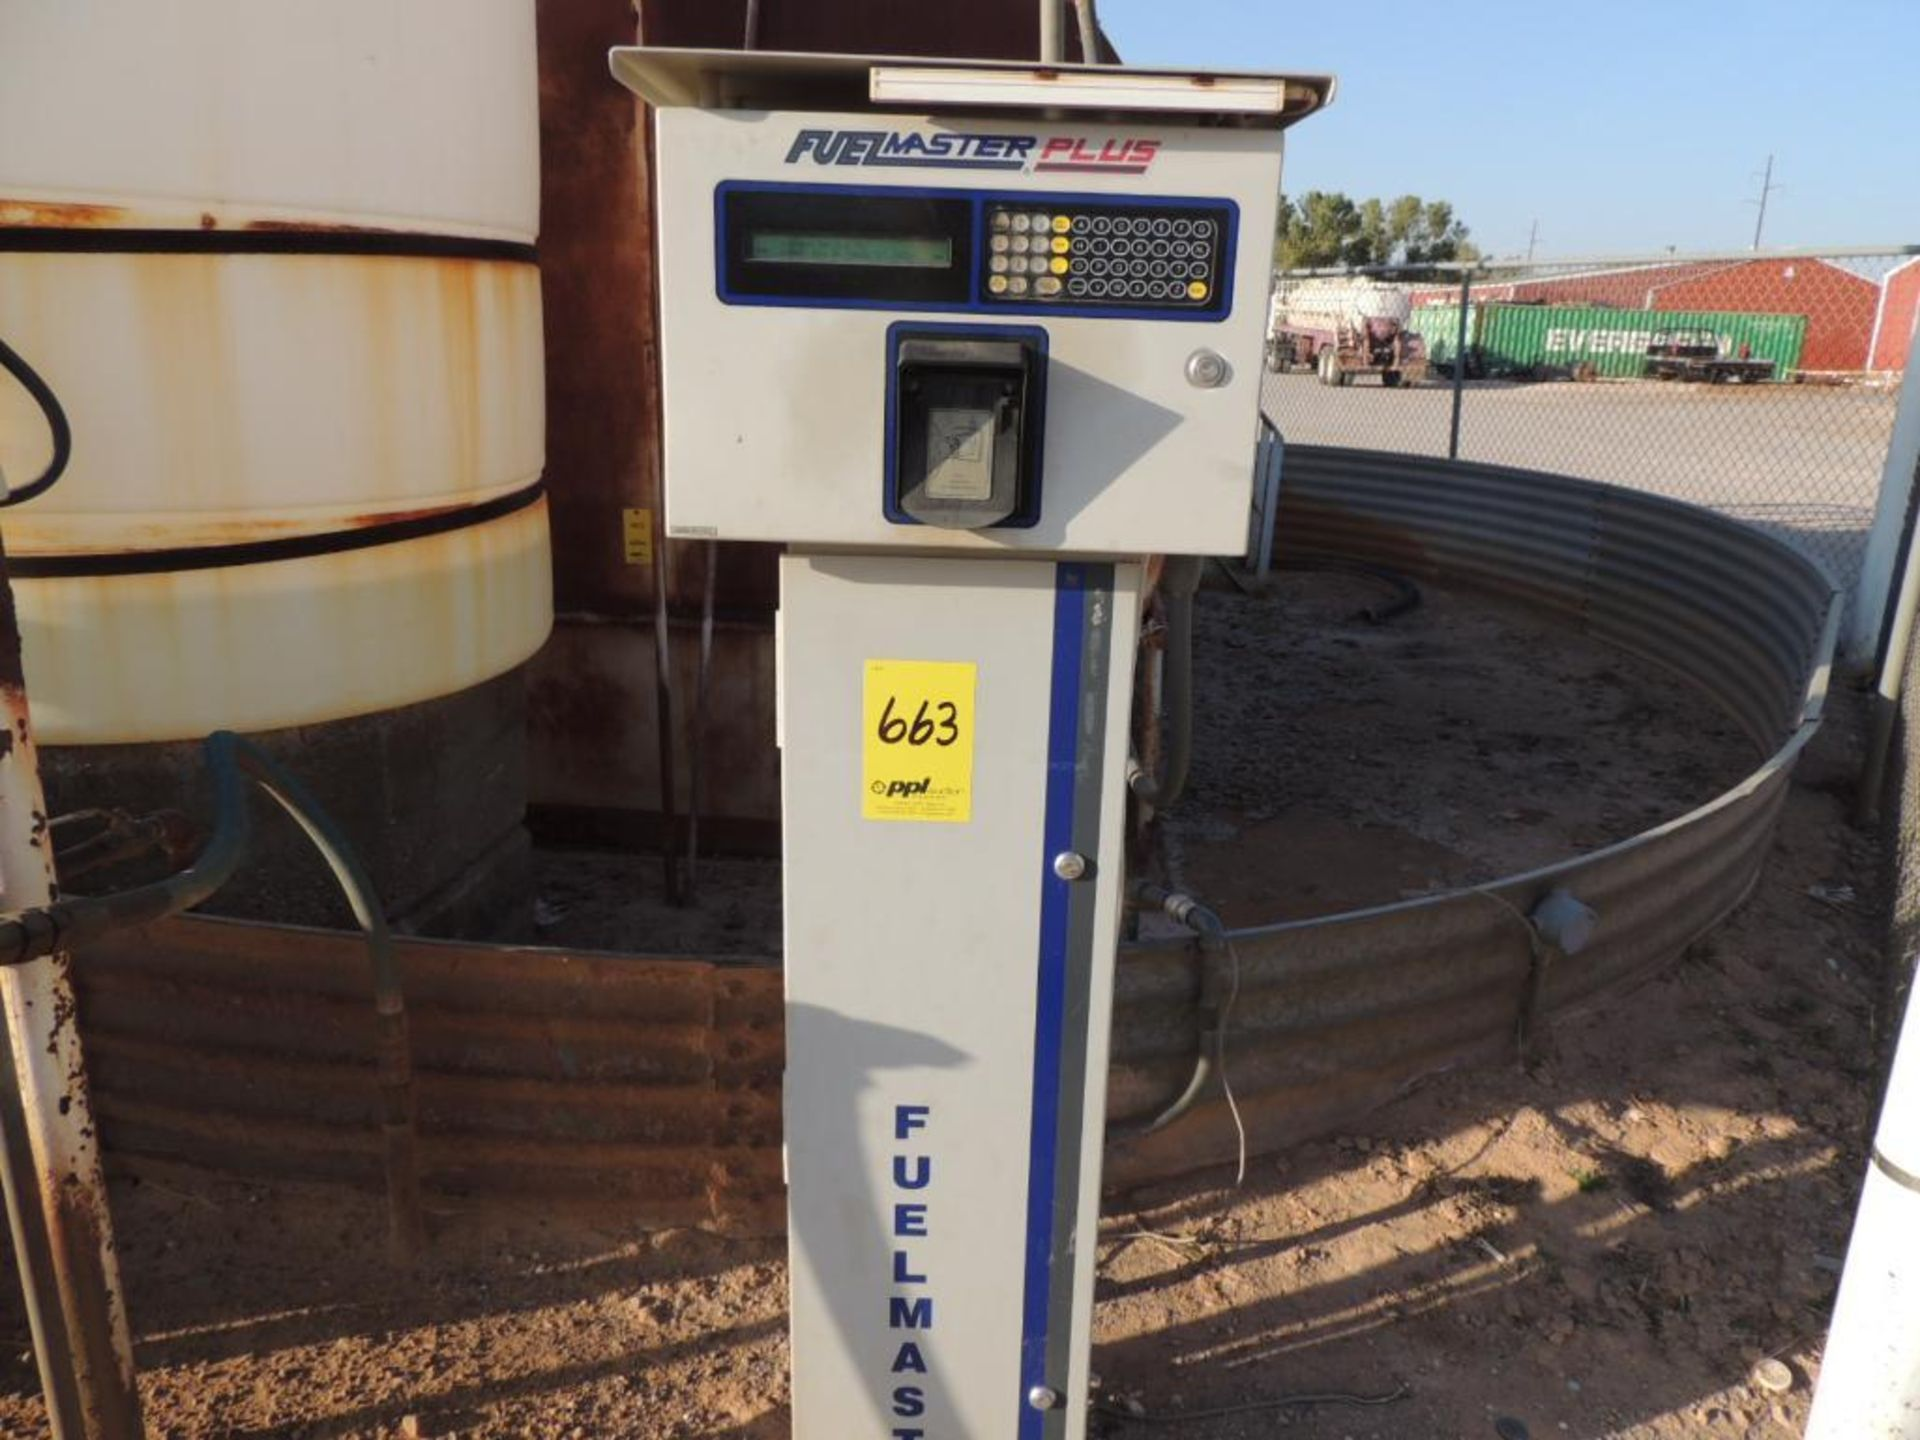 Fuel Island 8200 Gallon Steel Tank, Fuel Master Plus PrOK.ee Management System, Fill-Rite Series 900 - Image 2 of 4